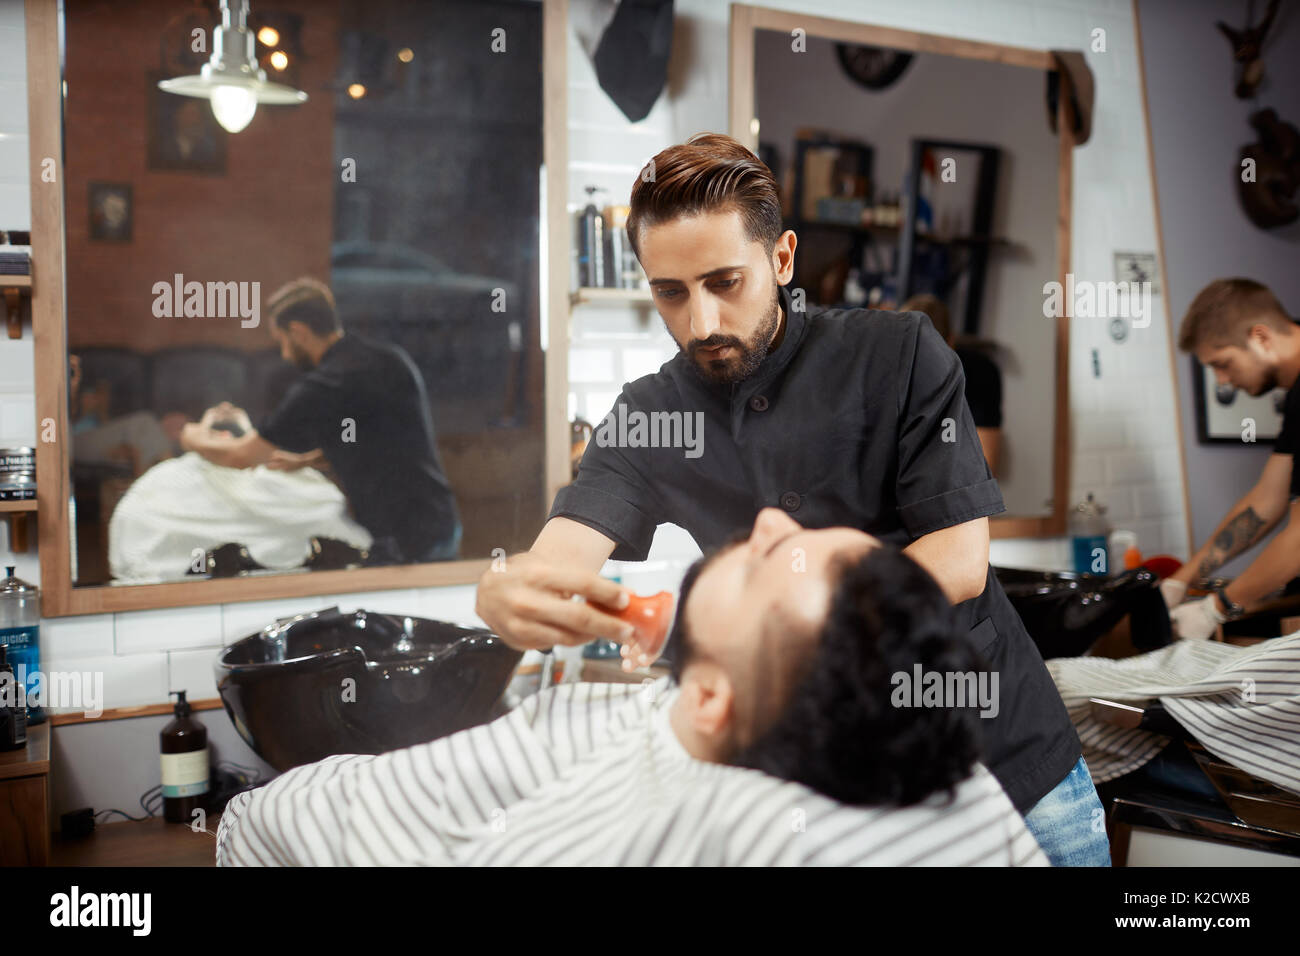 Hairstylist in black combing out bread for brunet at barbershop. - Stock Image